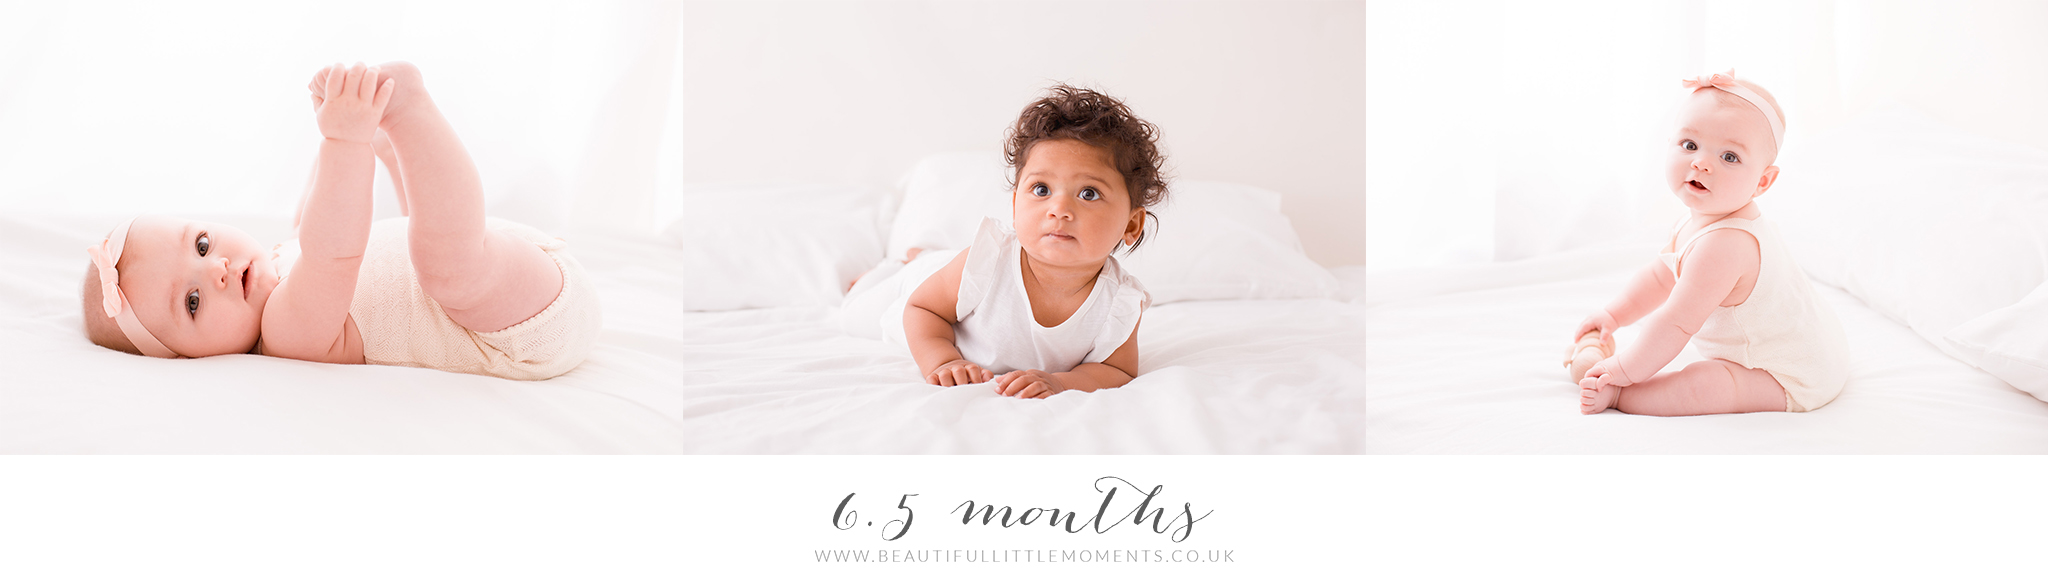 baby photography 6.5months